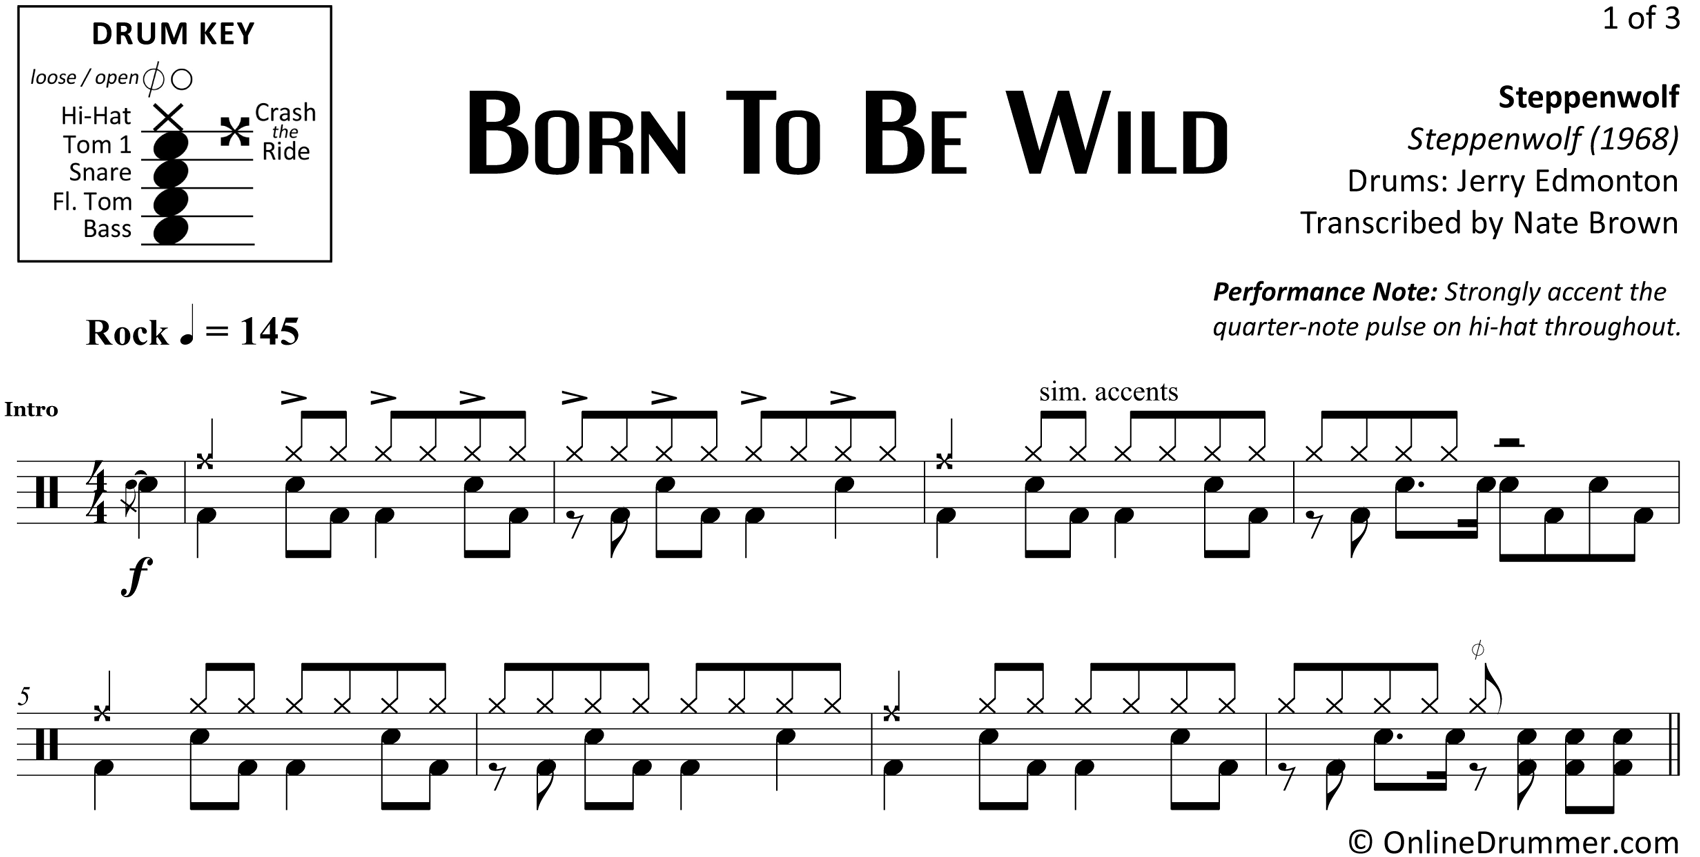 Born To Be Wild - Steppenwolf - Drum Sheet Music